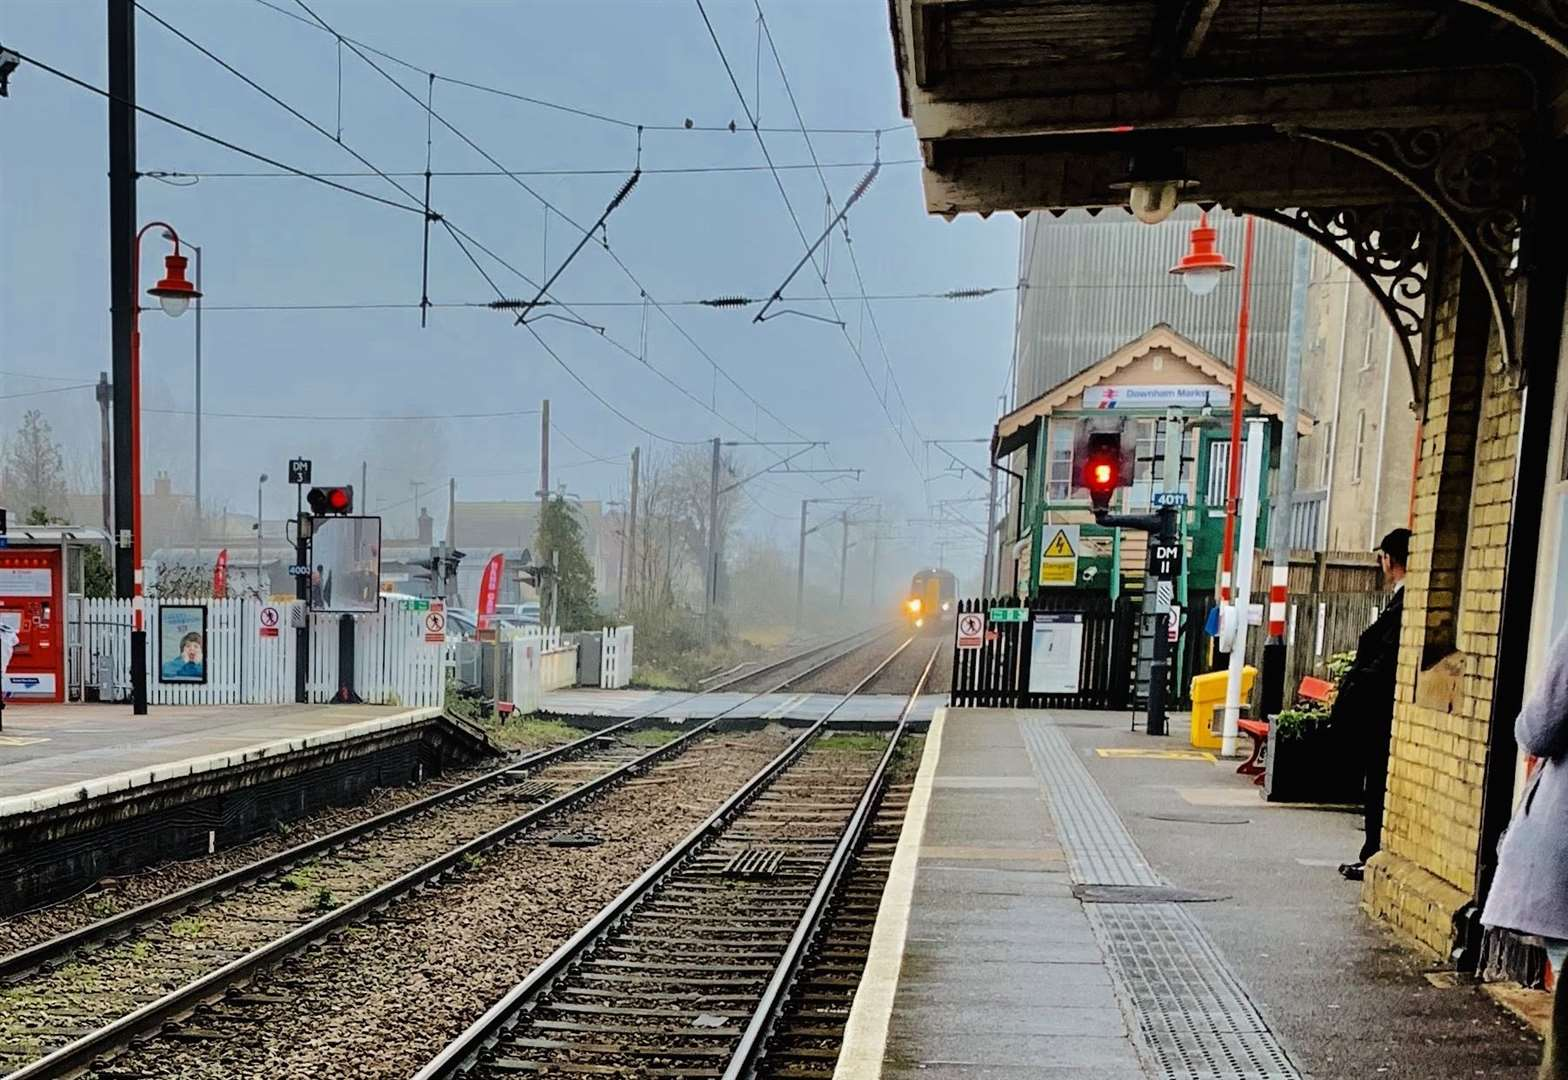 Trains being missed due to missing bridge at Downham station